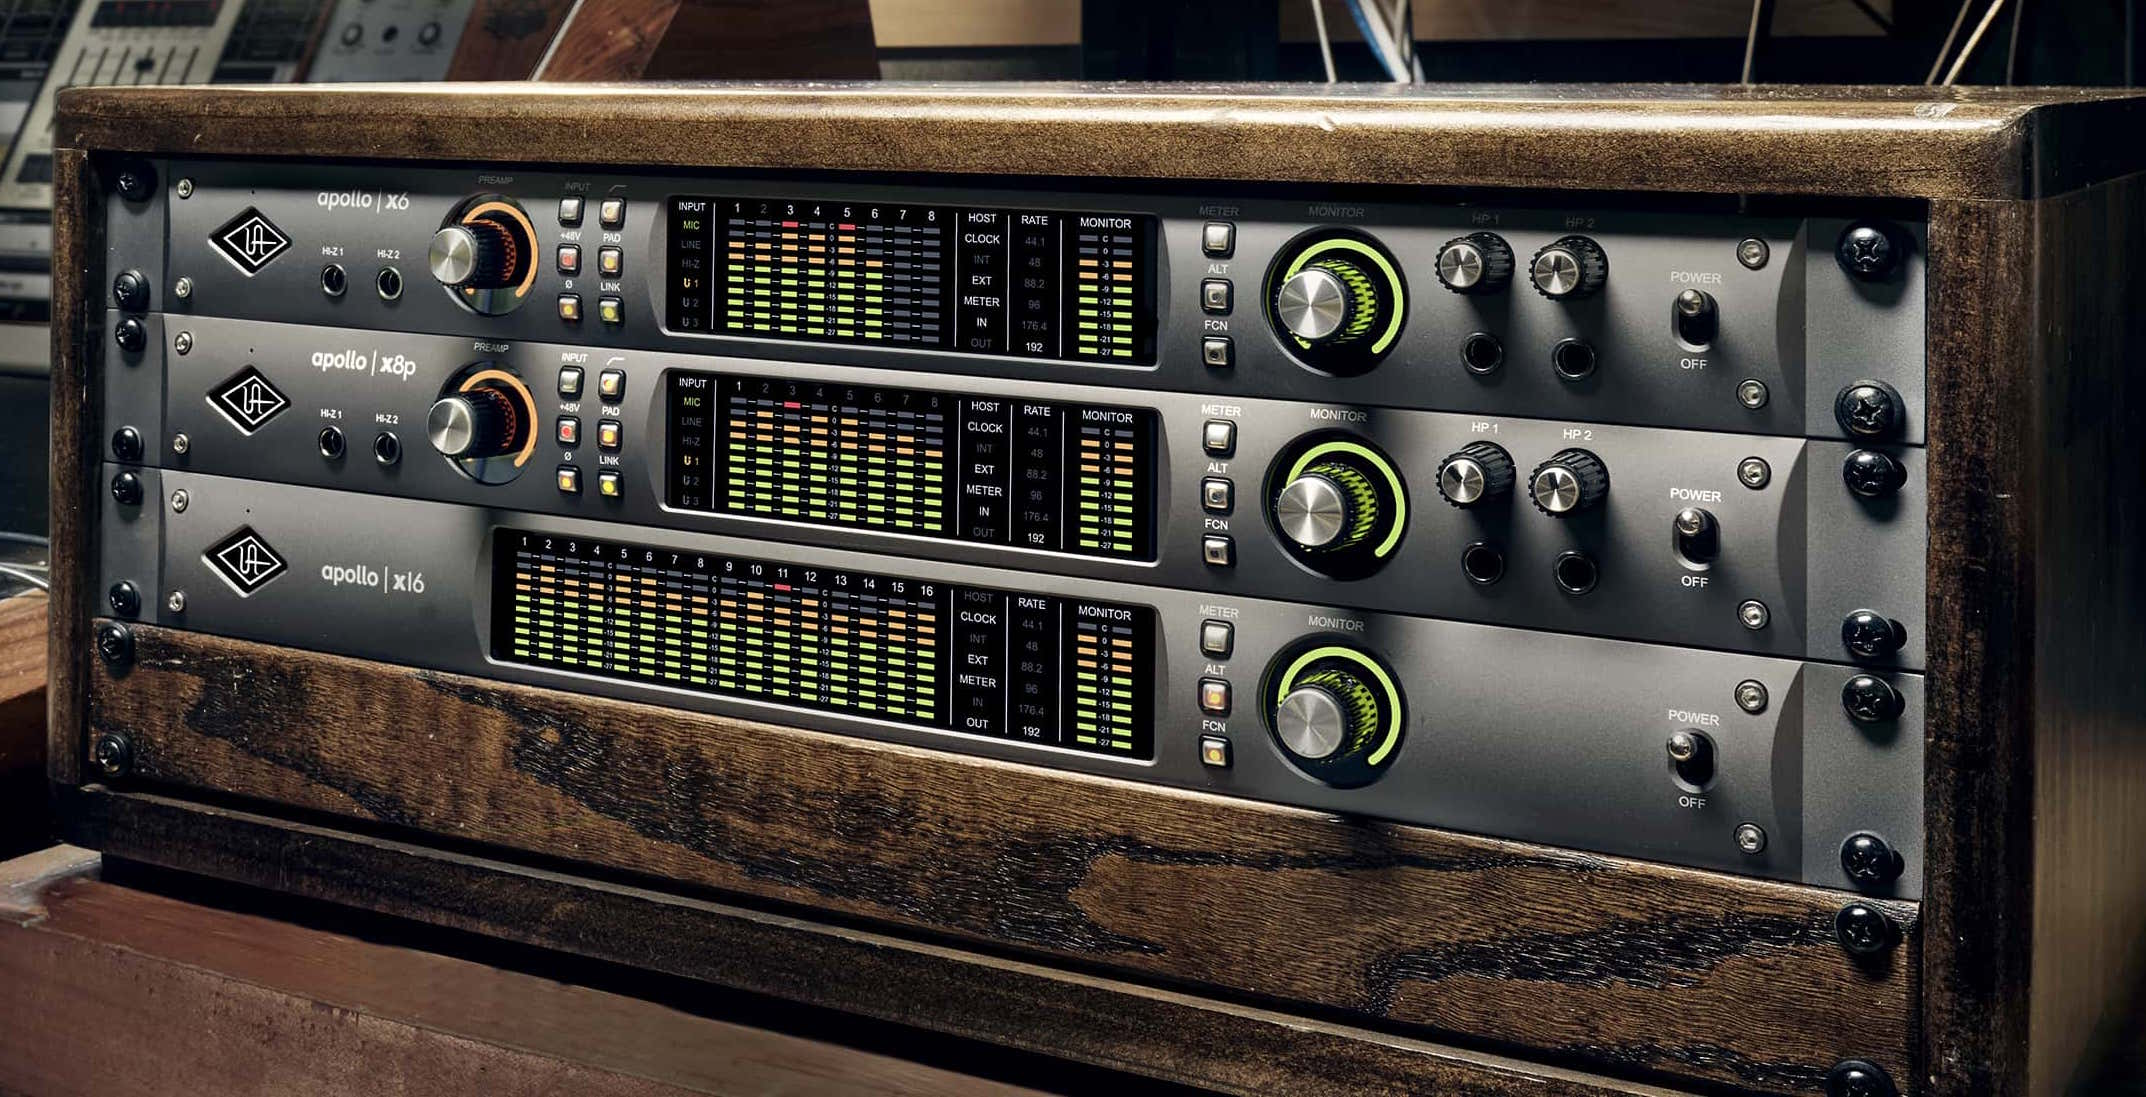 New Gear Review: Apollo x8 and x Series Interfaces from Universal